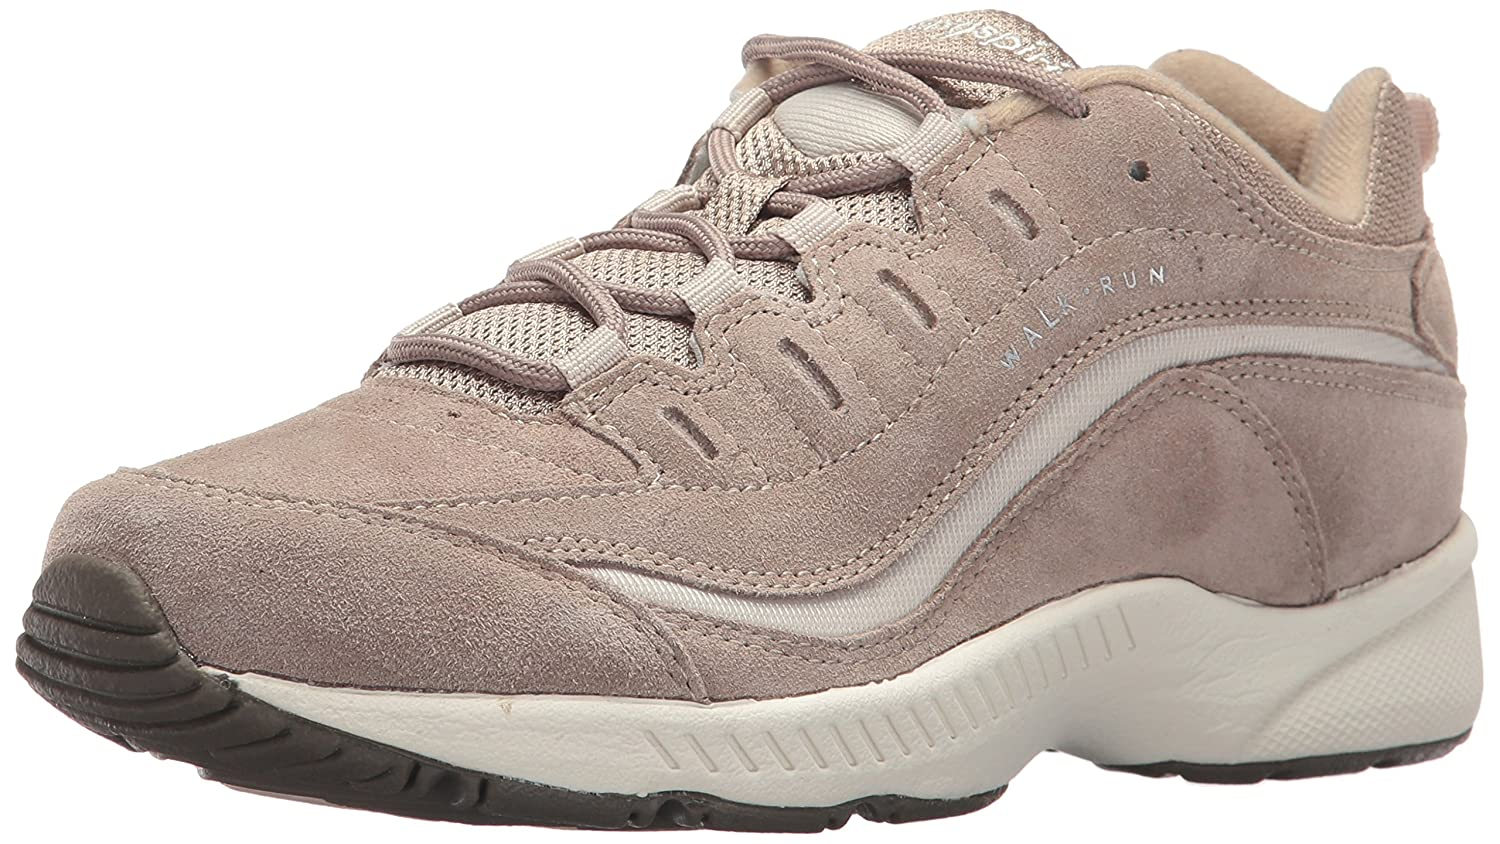 Easy Spirit Women's Romy Walking Shoe Taupe B071CVZYRF 8.5 N US|Medium Taupe Shoe Multi Suede 8be702